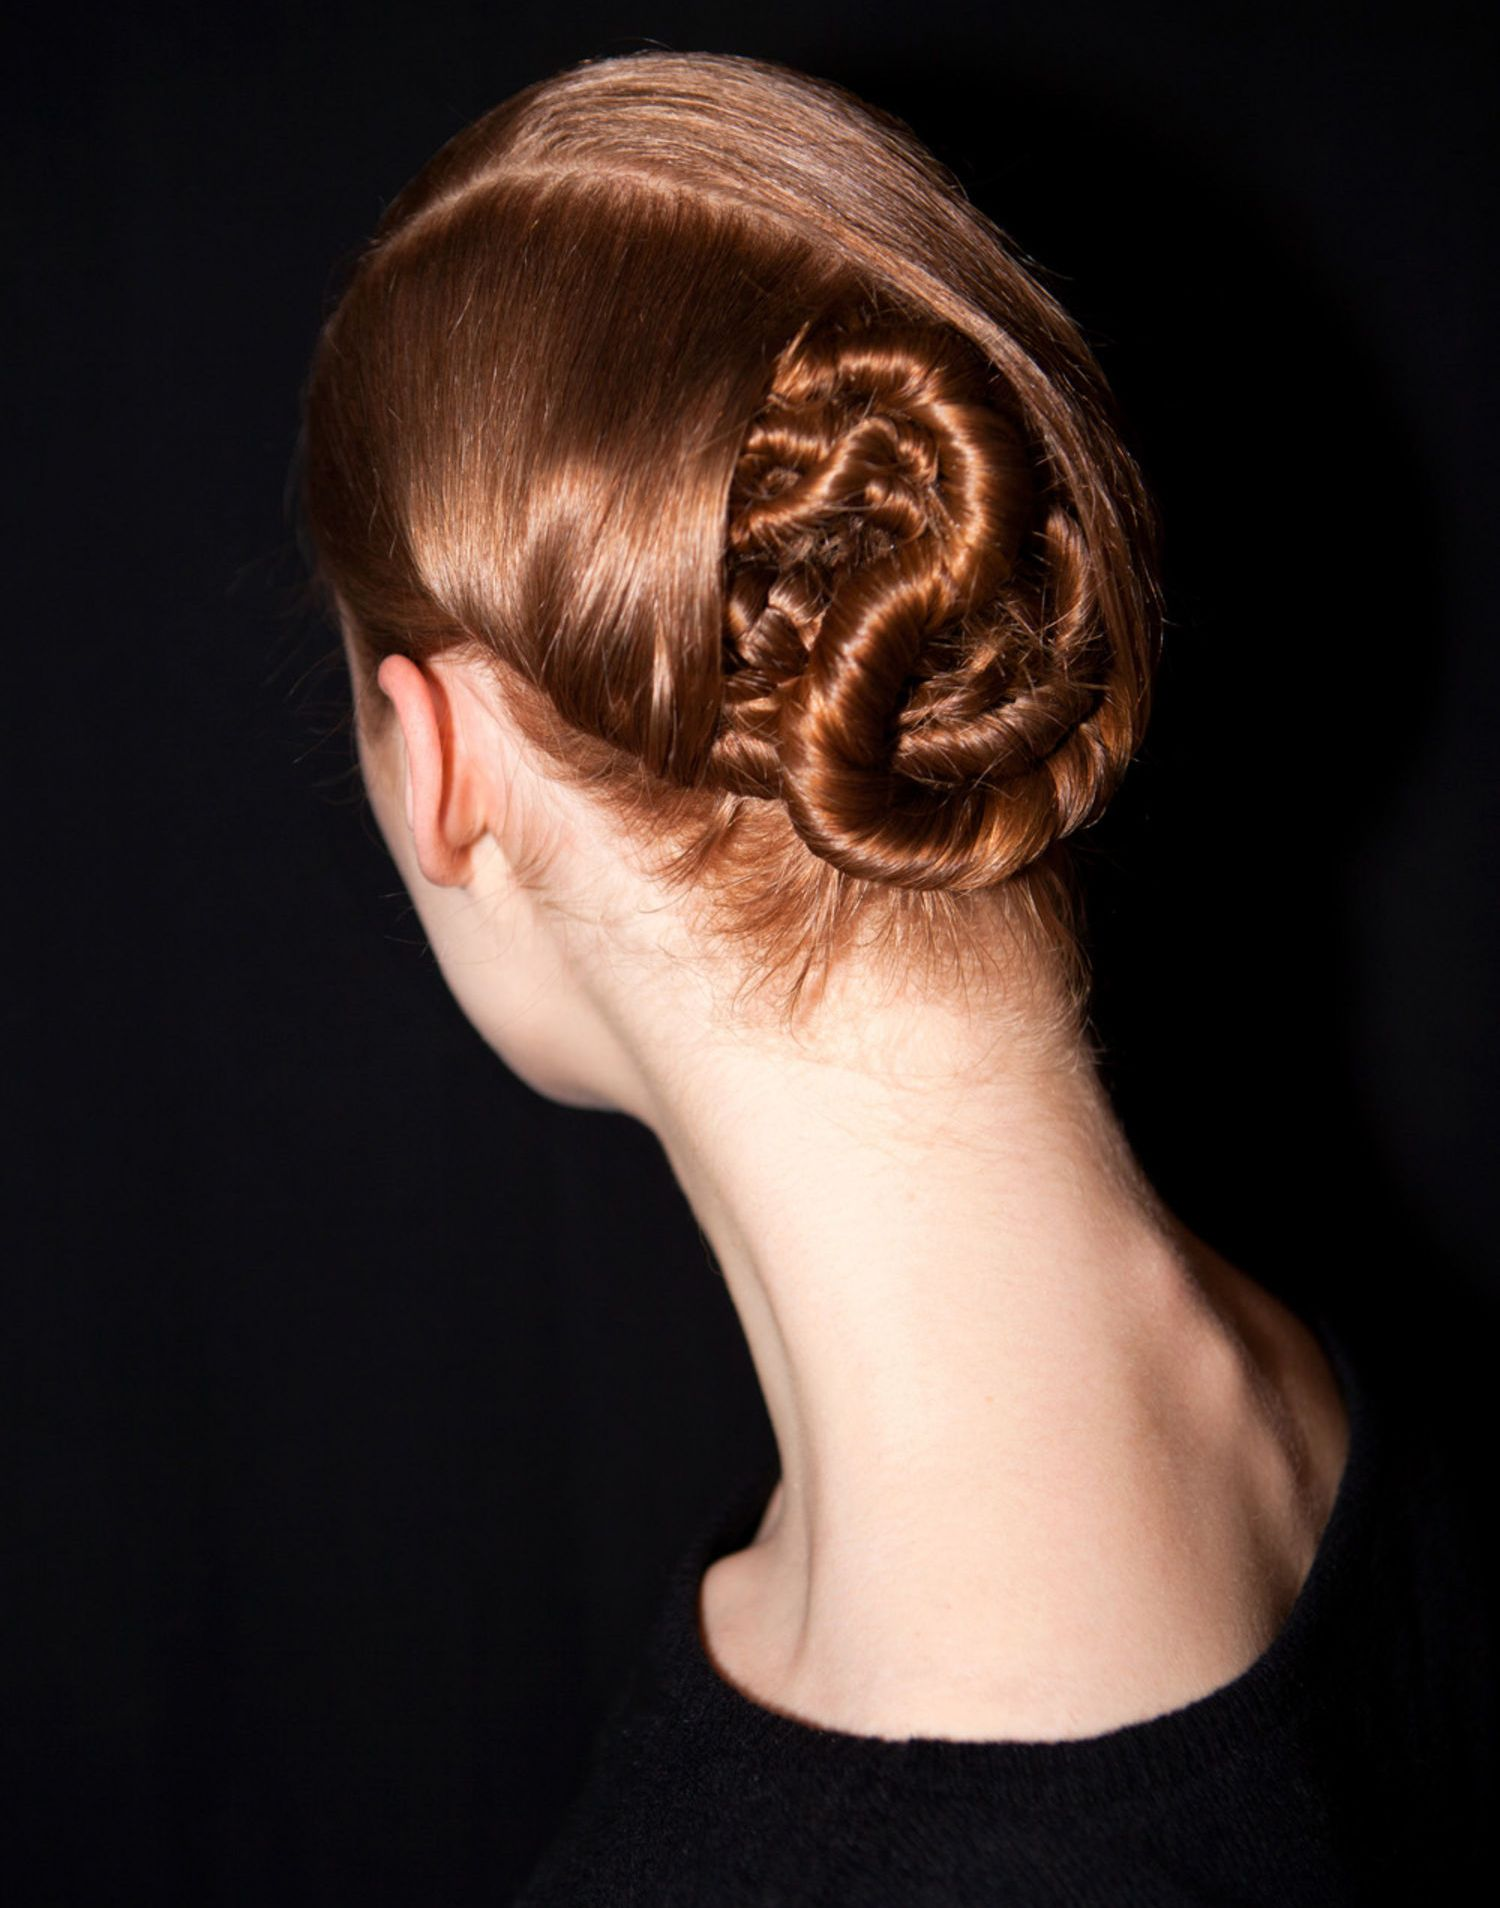 10-hot-hairstyles-we-are-dying-to-try_06